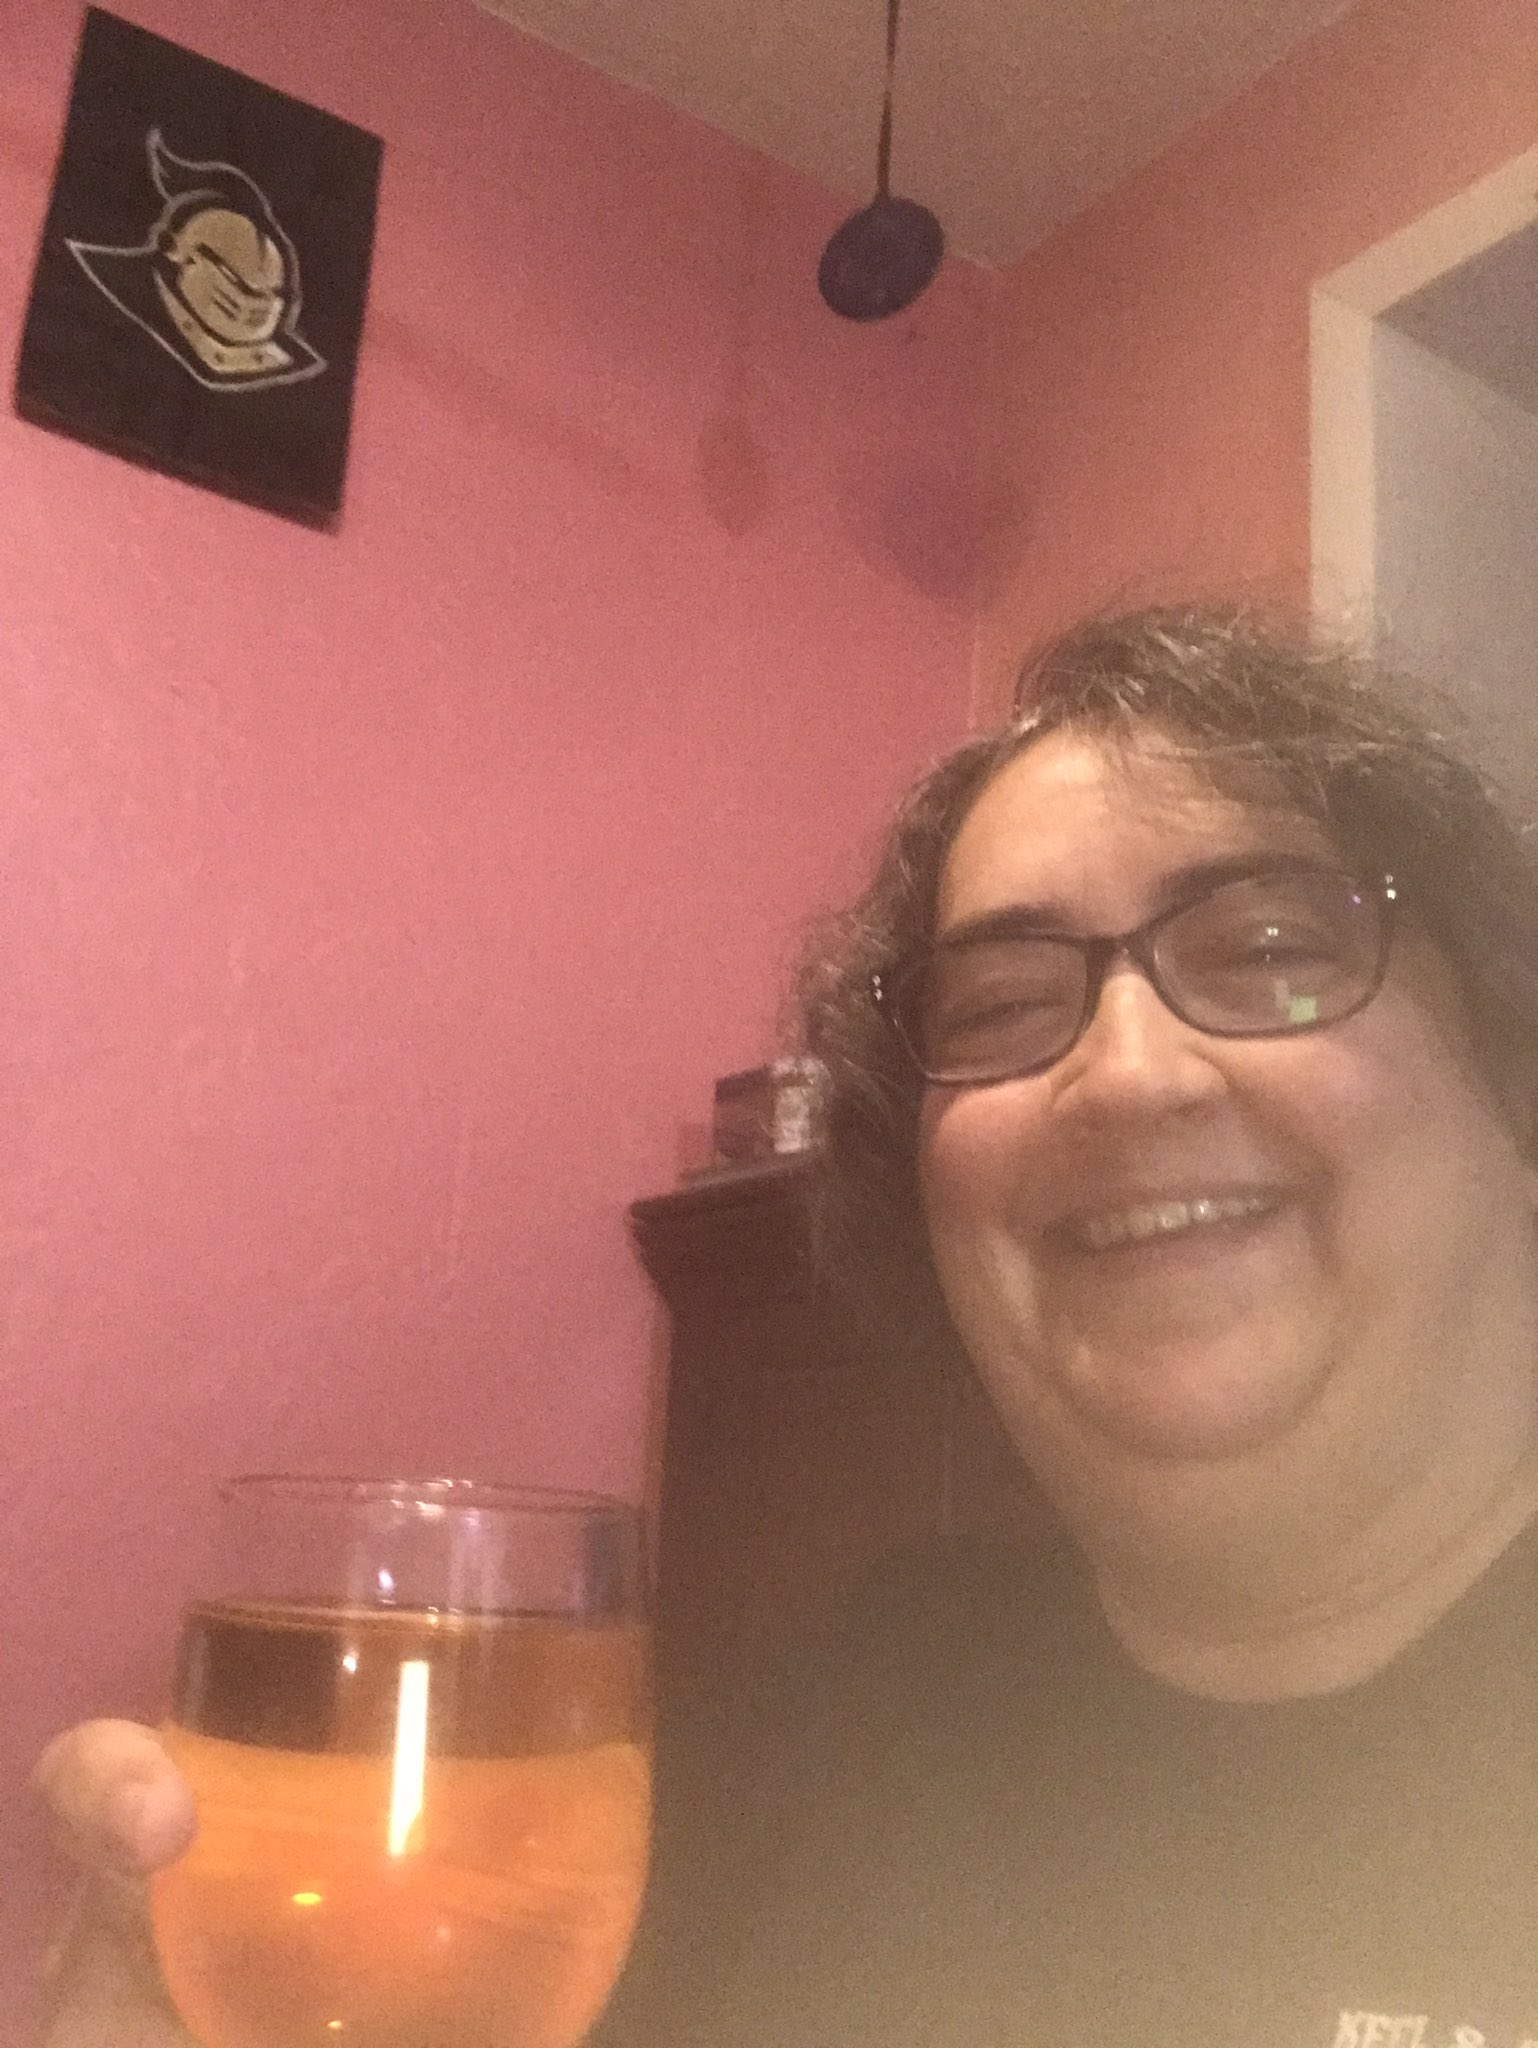 Lara Zielinsky toasting her acceptance to grad school with wine